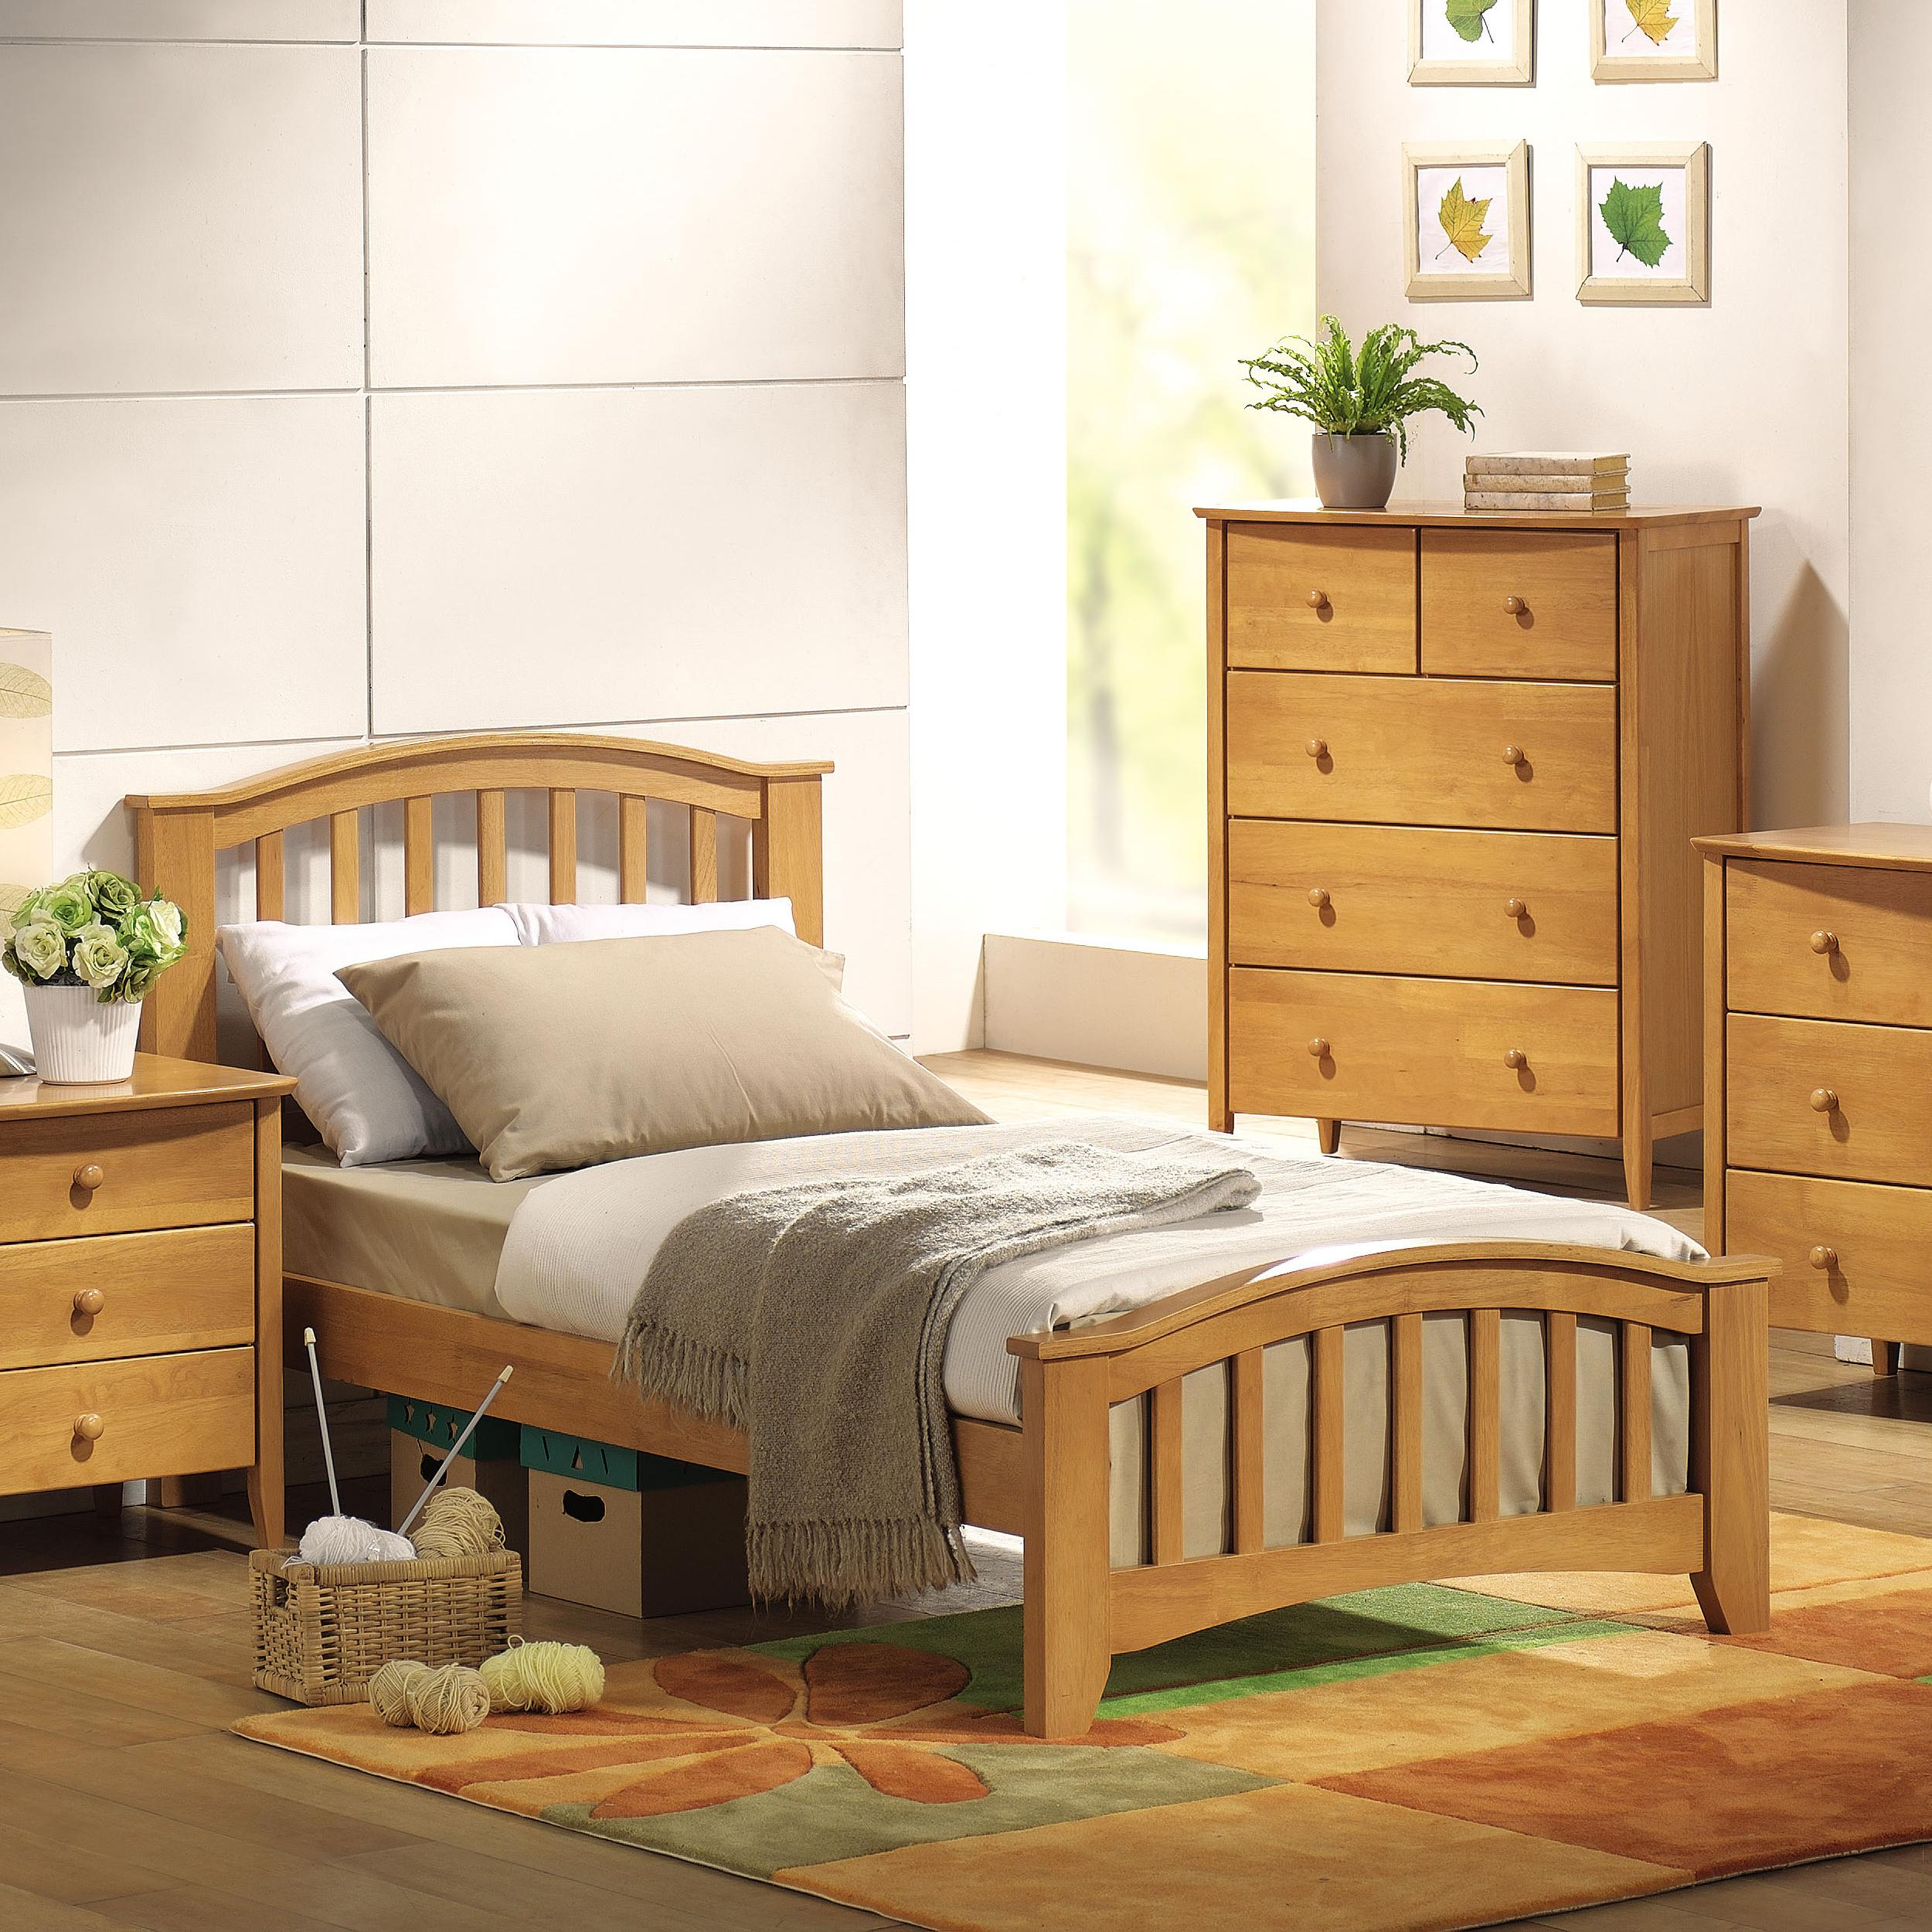 Acme Furniture San Marino Twin Slat Bed - Item Number: 8940T